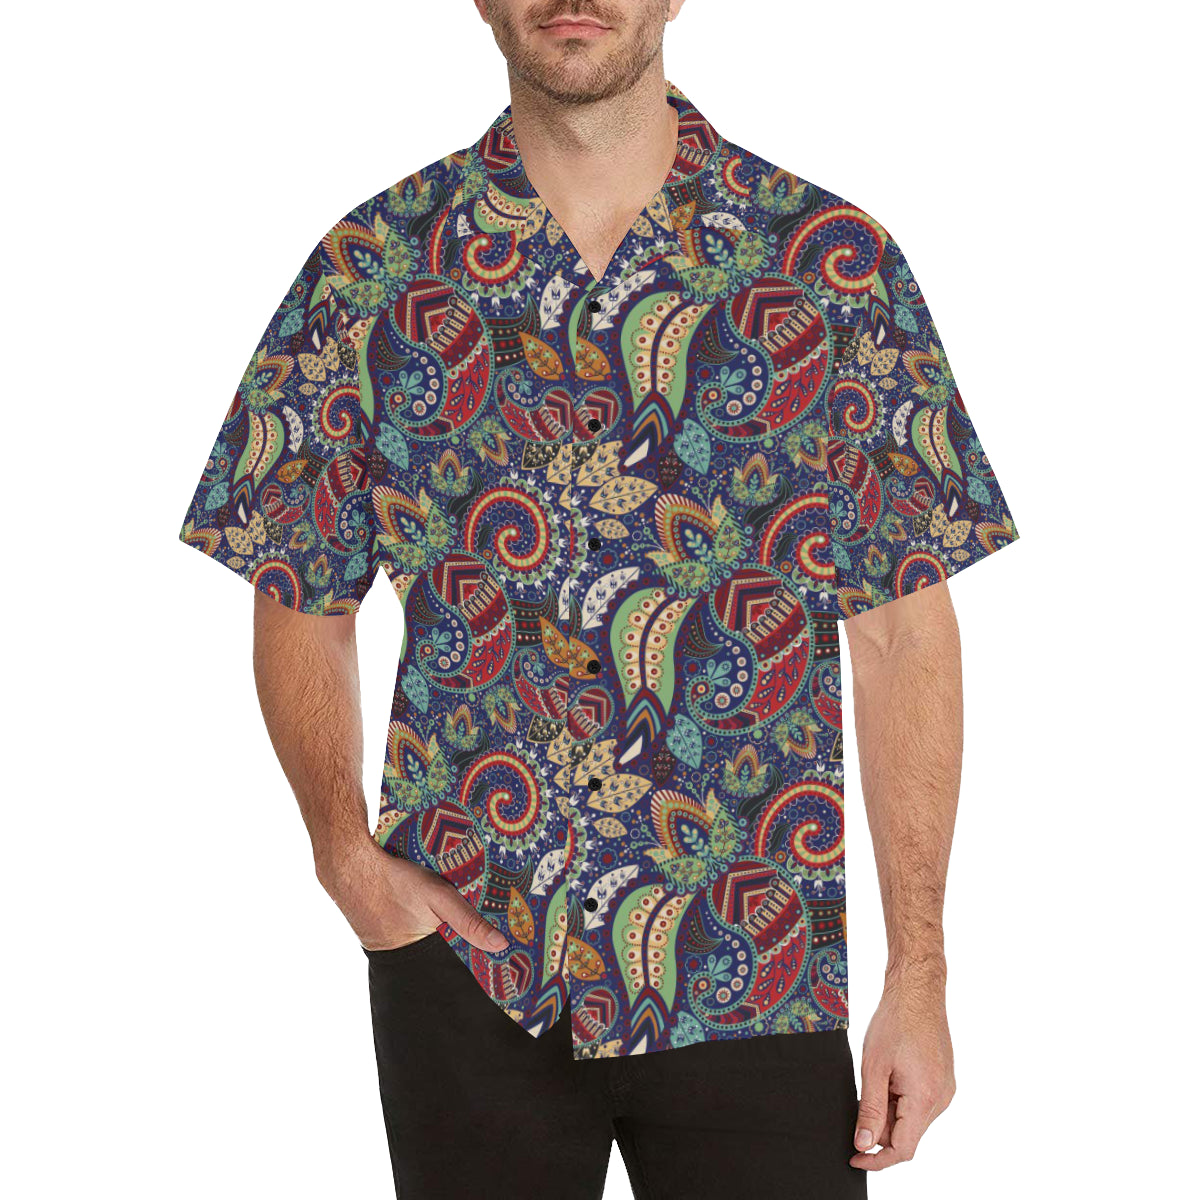 Paisley Boho Pattern Print Design A03 Hawaiian Shirt